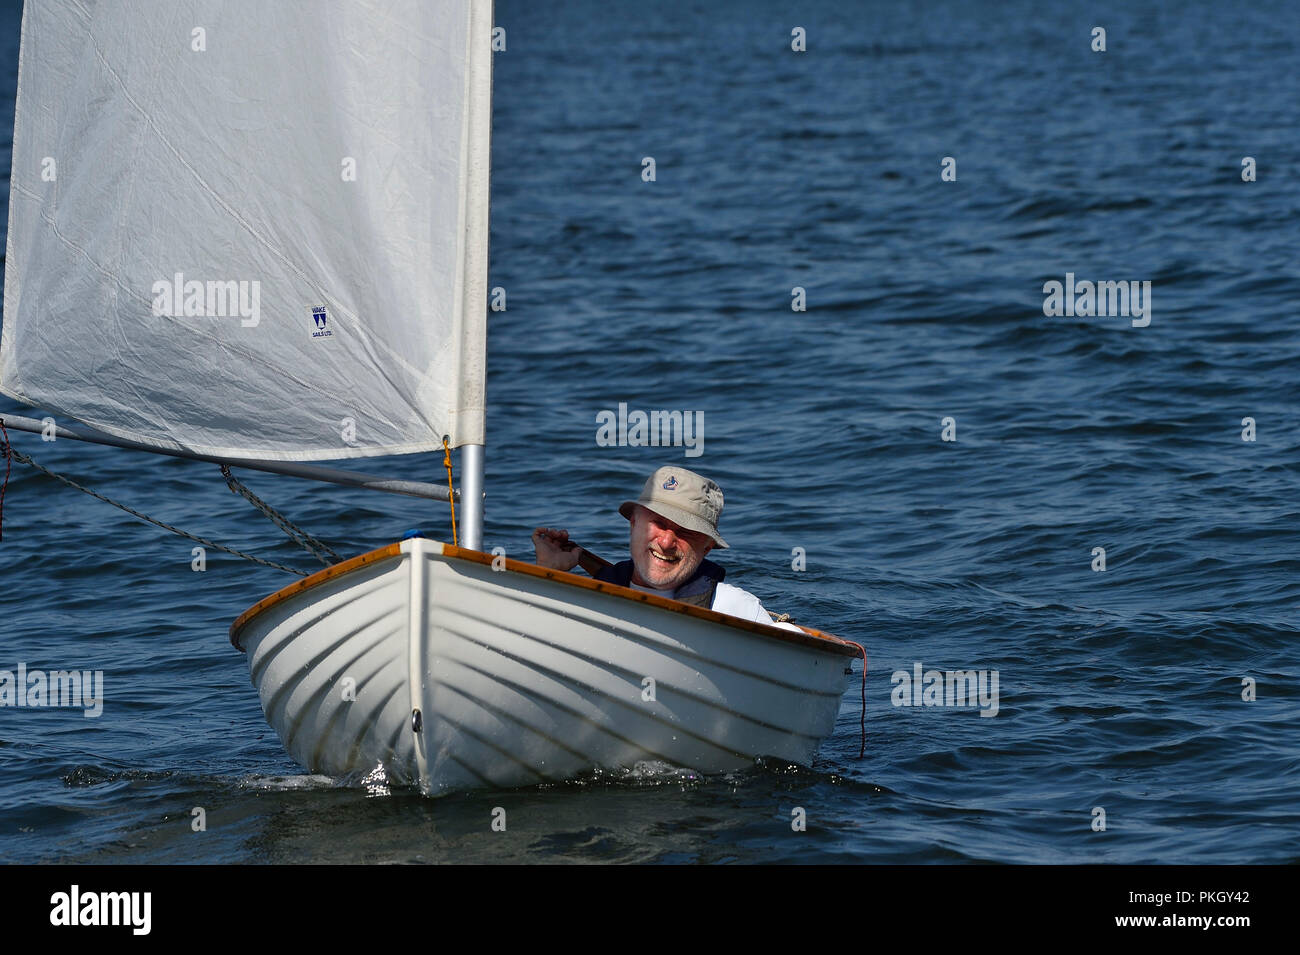 A small sail boat sailing on the water in the Strait of Georgia near Vancouver Island British Columbia Canada - Stock Image